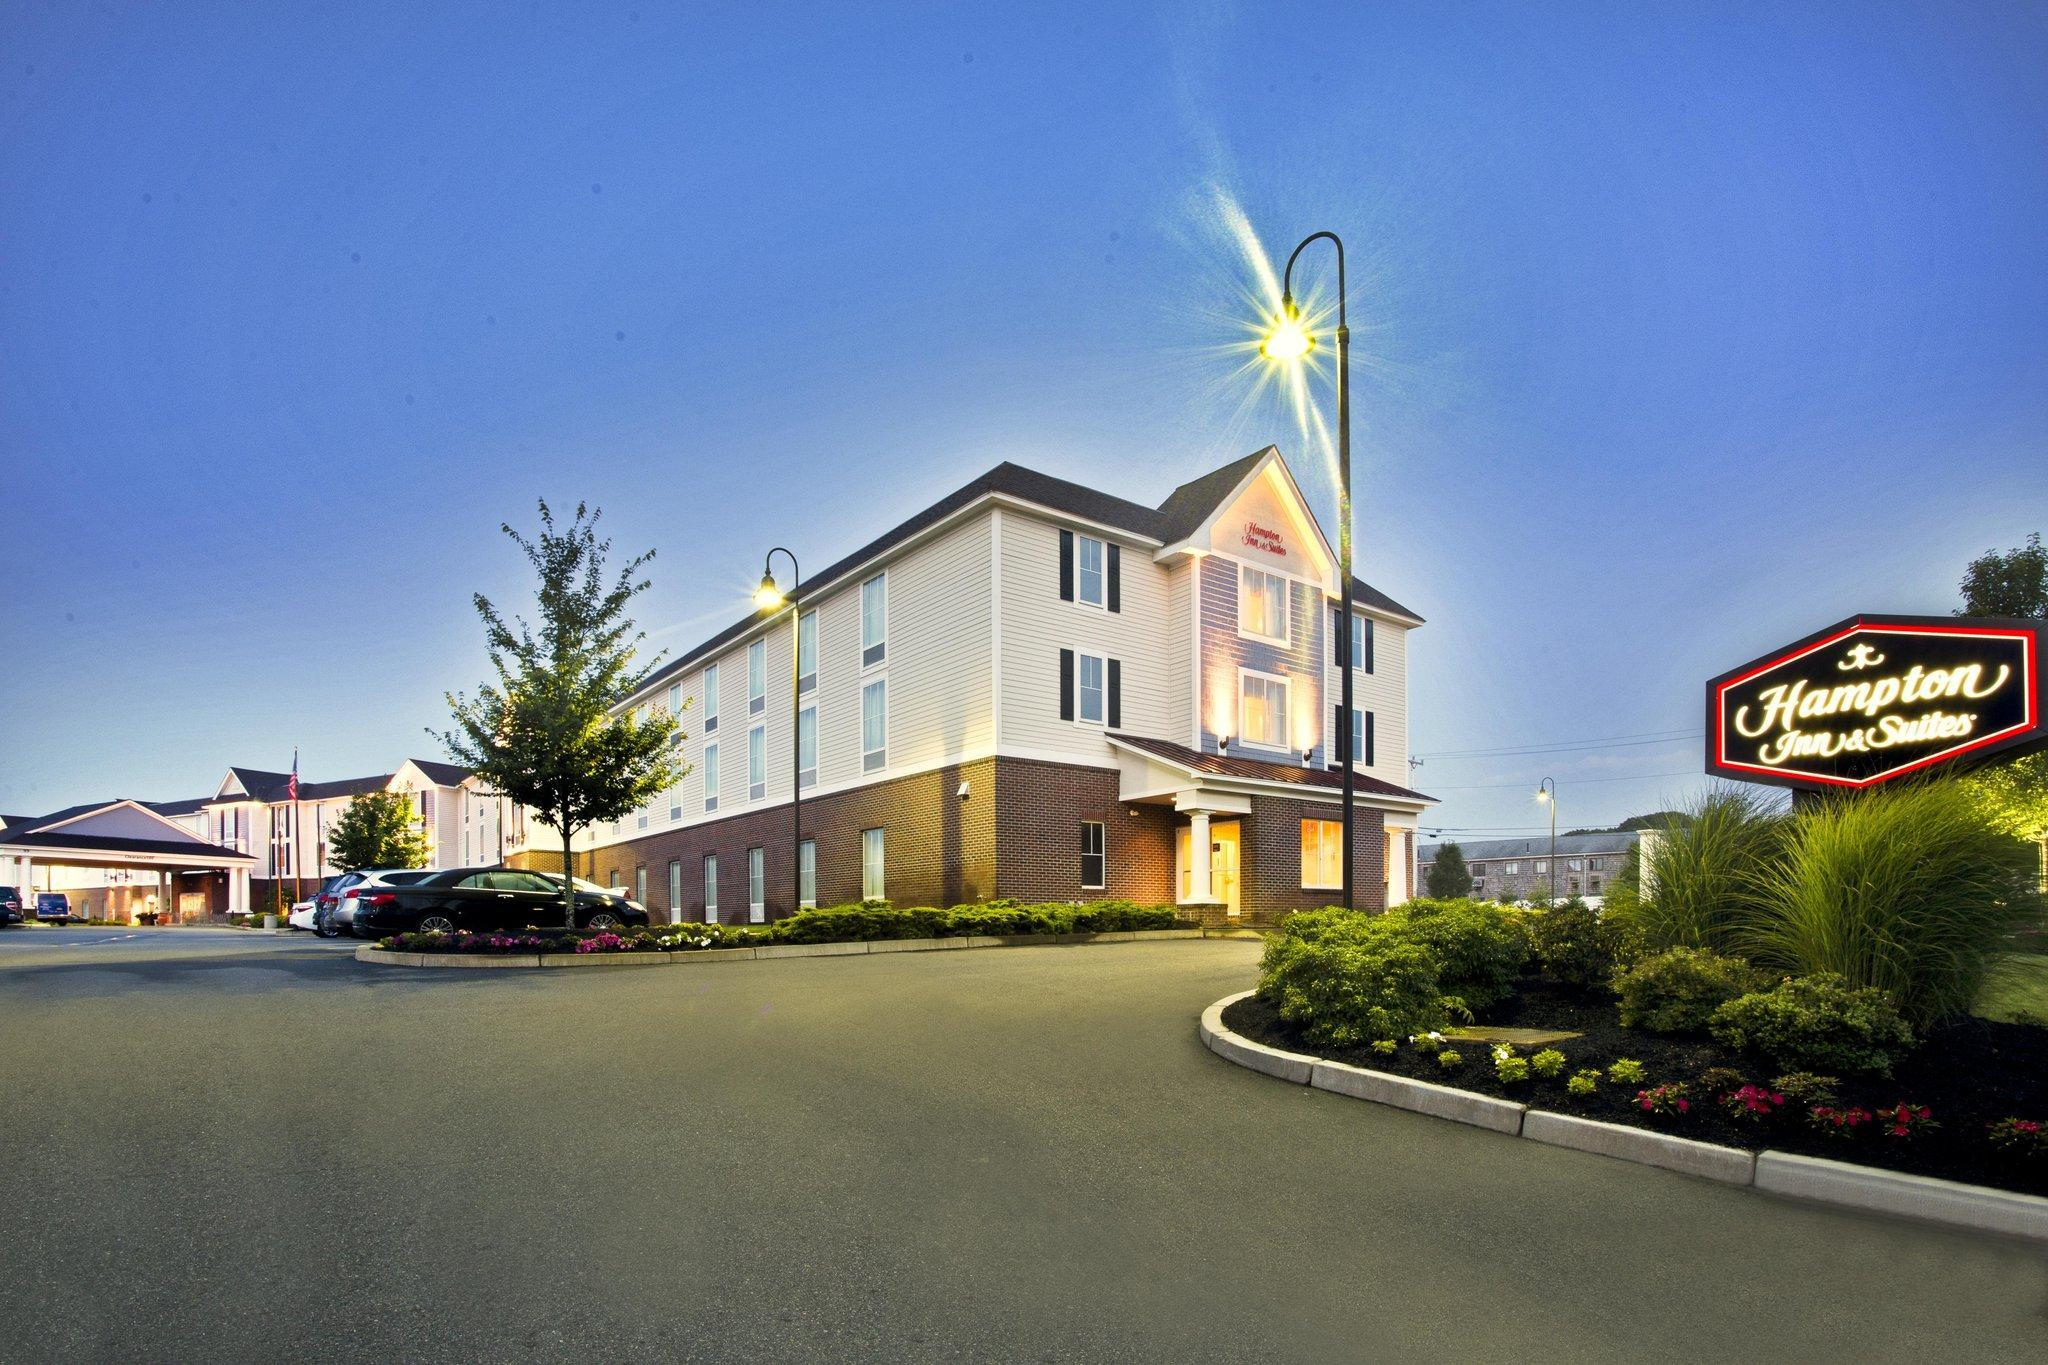 Hampton Inn And Suites Cape Cod West Yarmouth